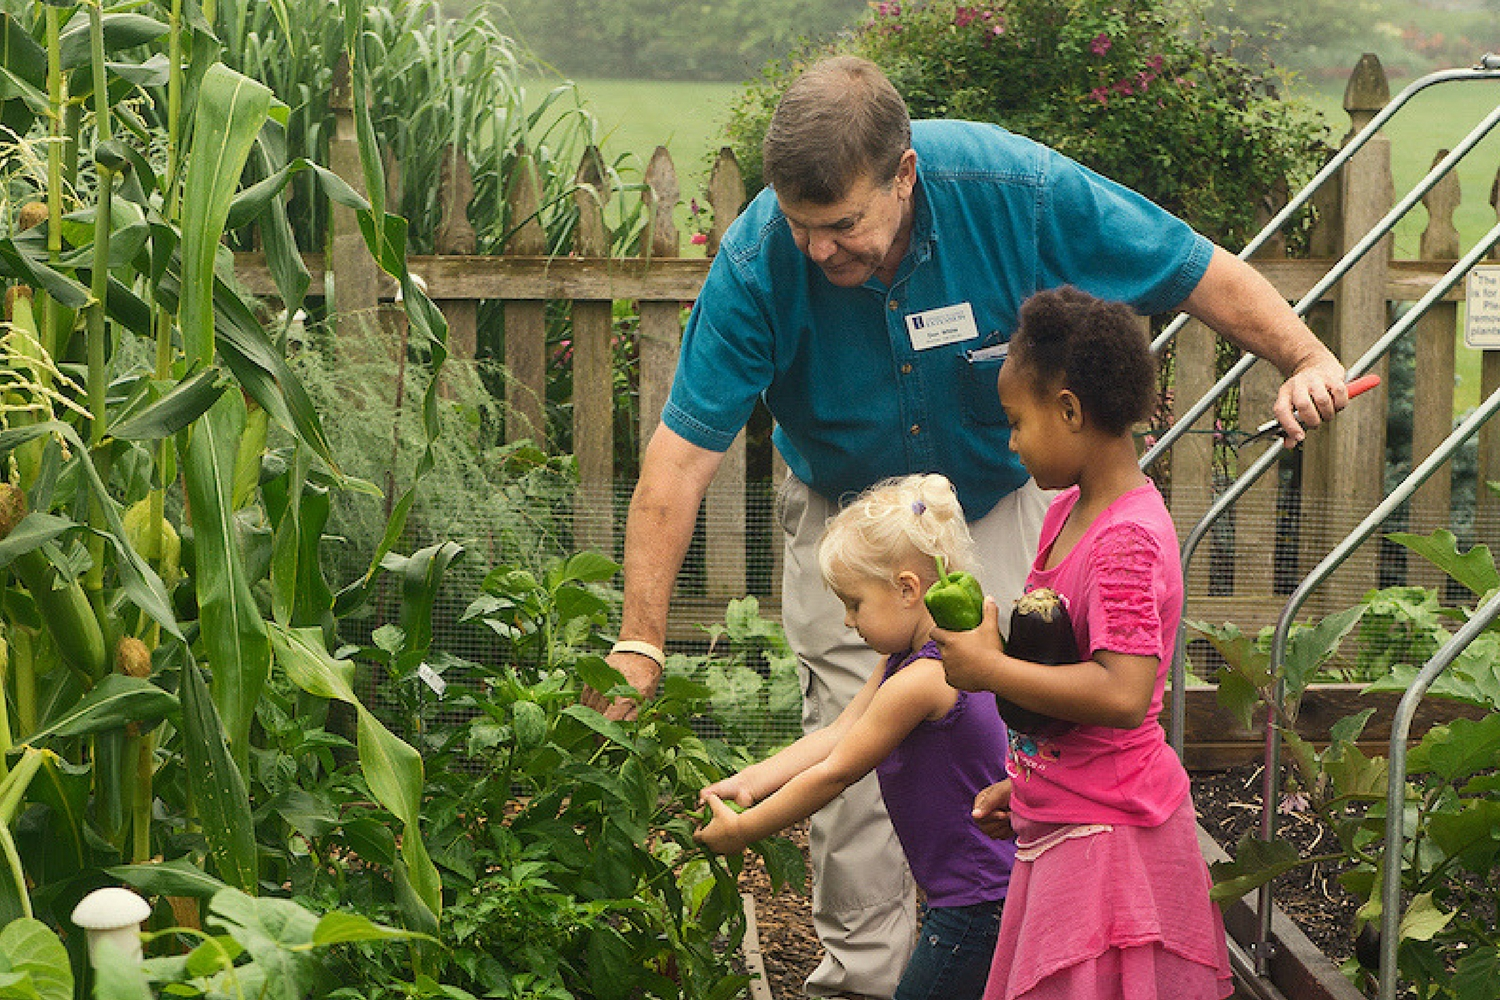 As Spring Nears, 'Tis the Season for Horticulture Education